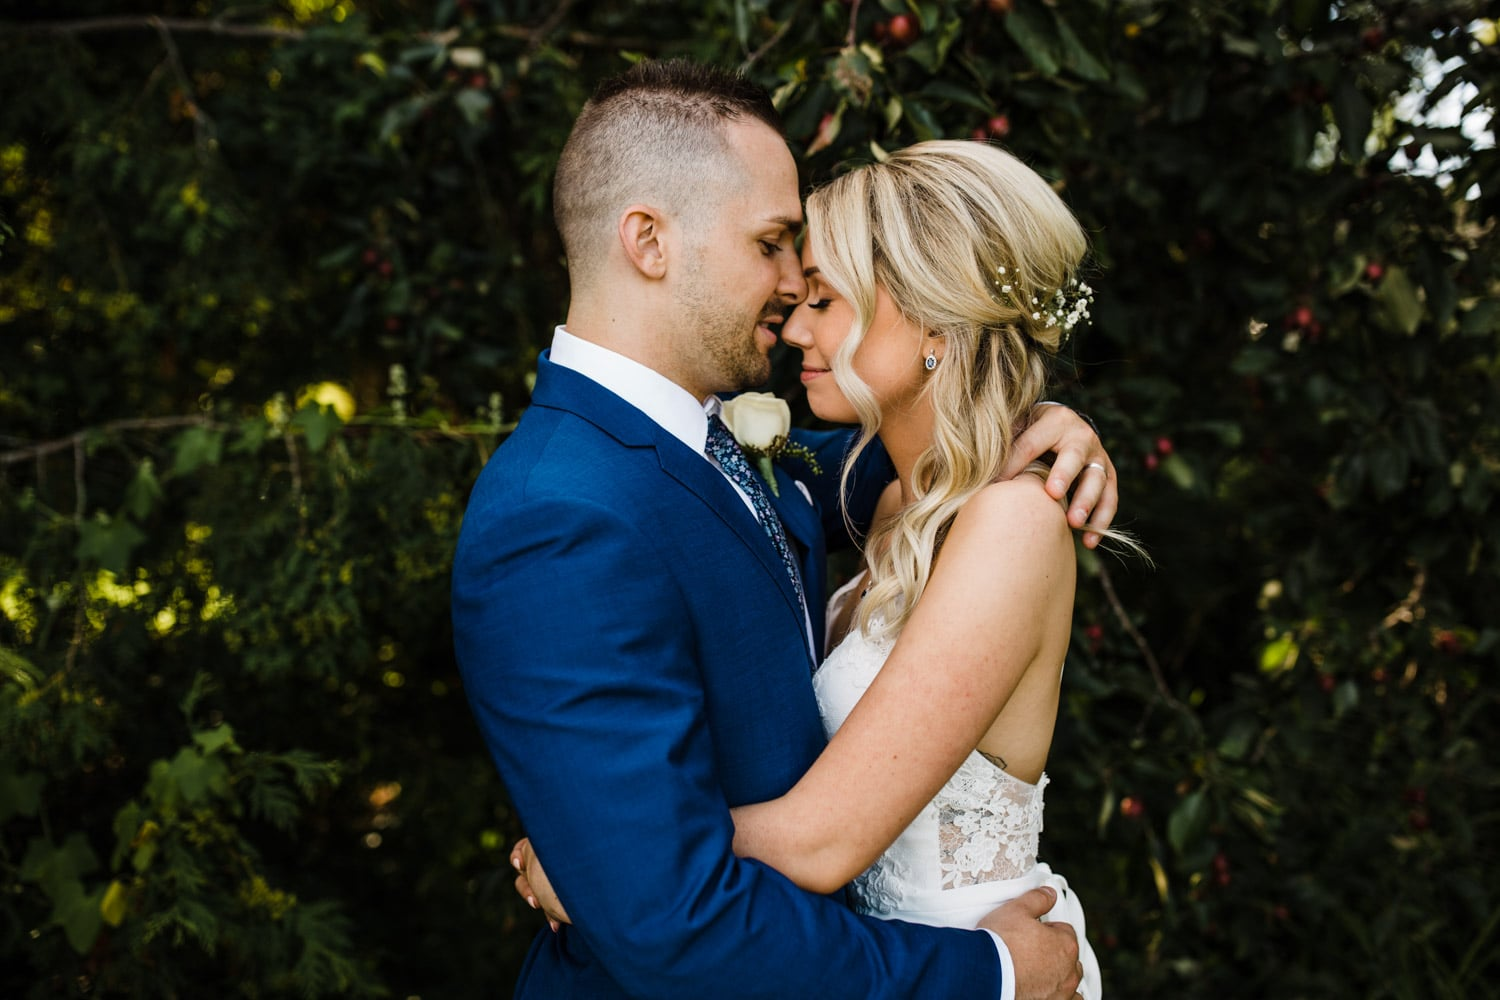 bride and groom hug one another - strathmere wedding